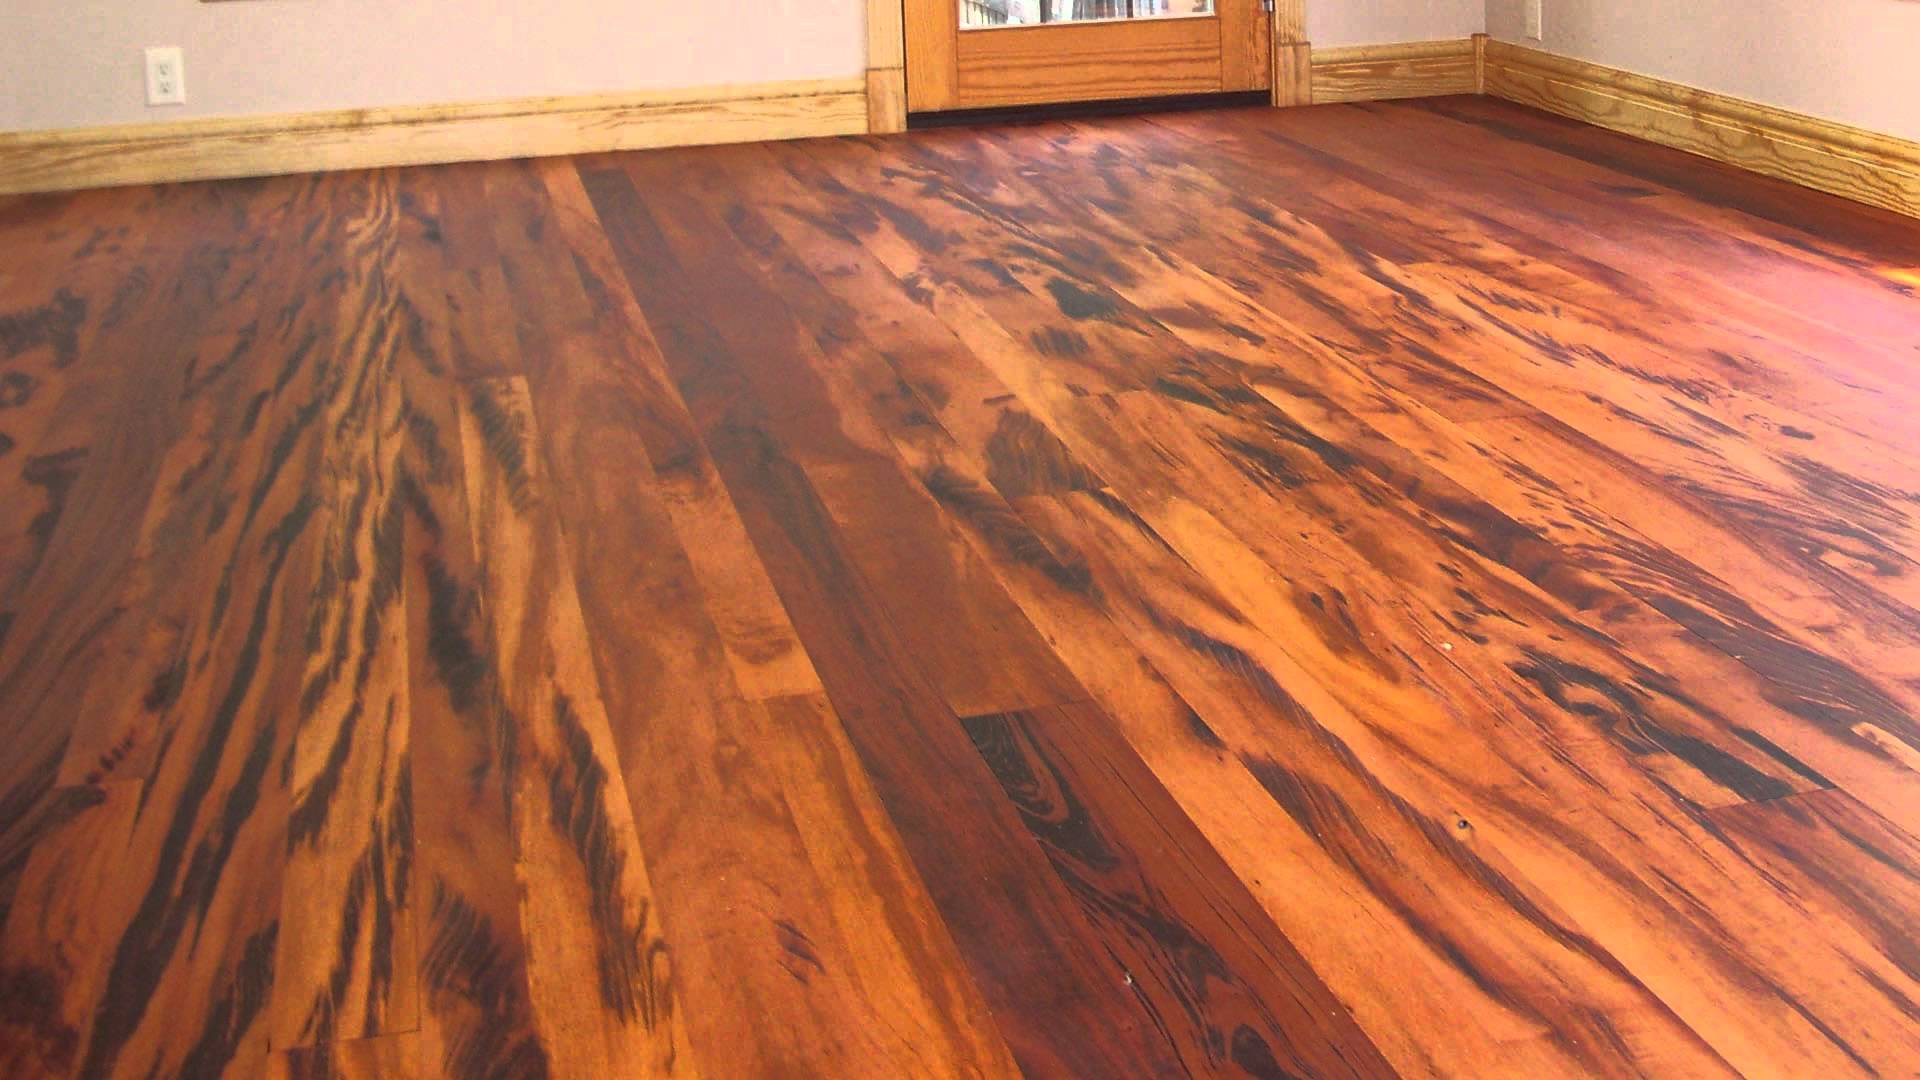 The exotic tiger wood flooring